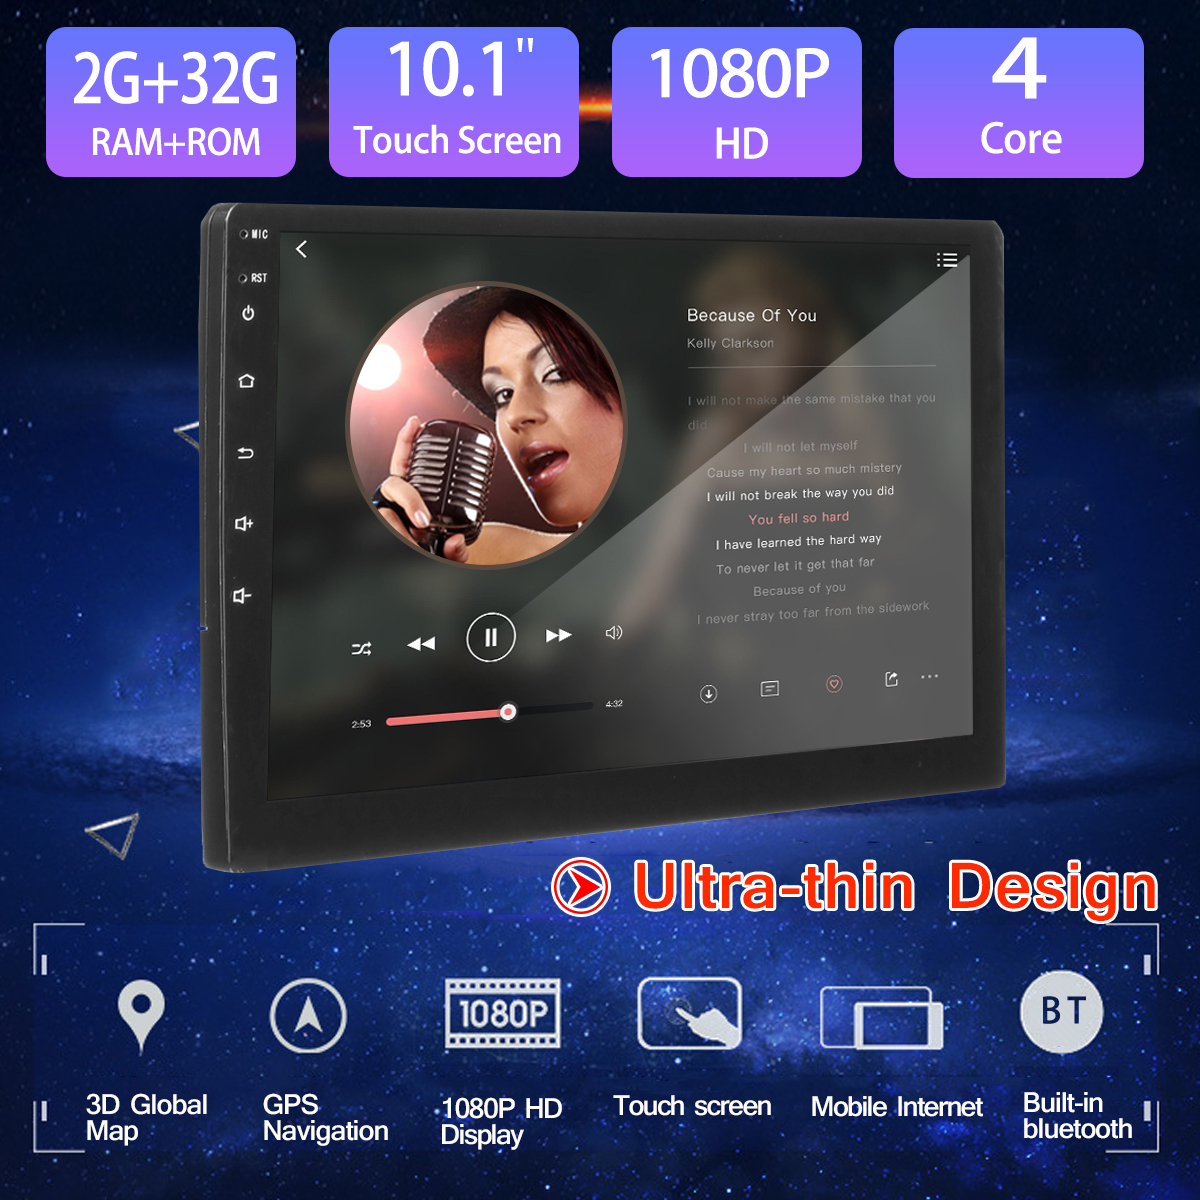 Car Stereo 2 din Car Multimedia MP5 Player 2G+32G 10.1 for Android 8.0 bluetooth WIFI GPS Nav Quad Core Radio Video AudioCar Stereo 2 din Car Multimedia MP5 Player 2G+32G 10.1 for Android 8.0 bluetooth WIFI GPS Nav Quad Core Radio Video Audio